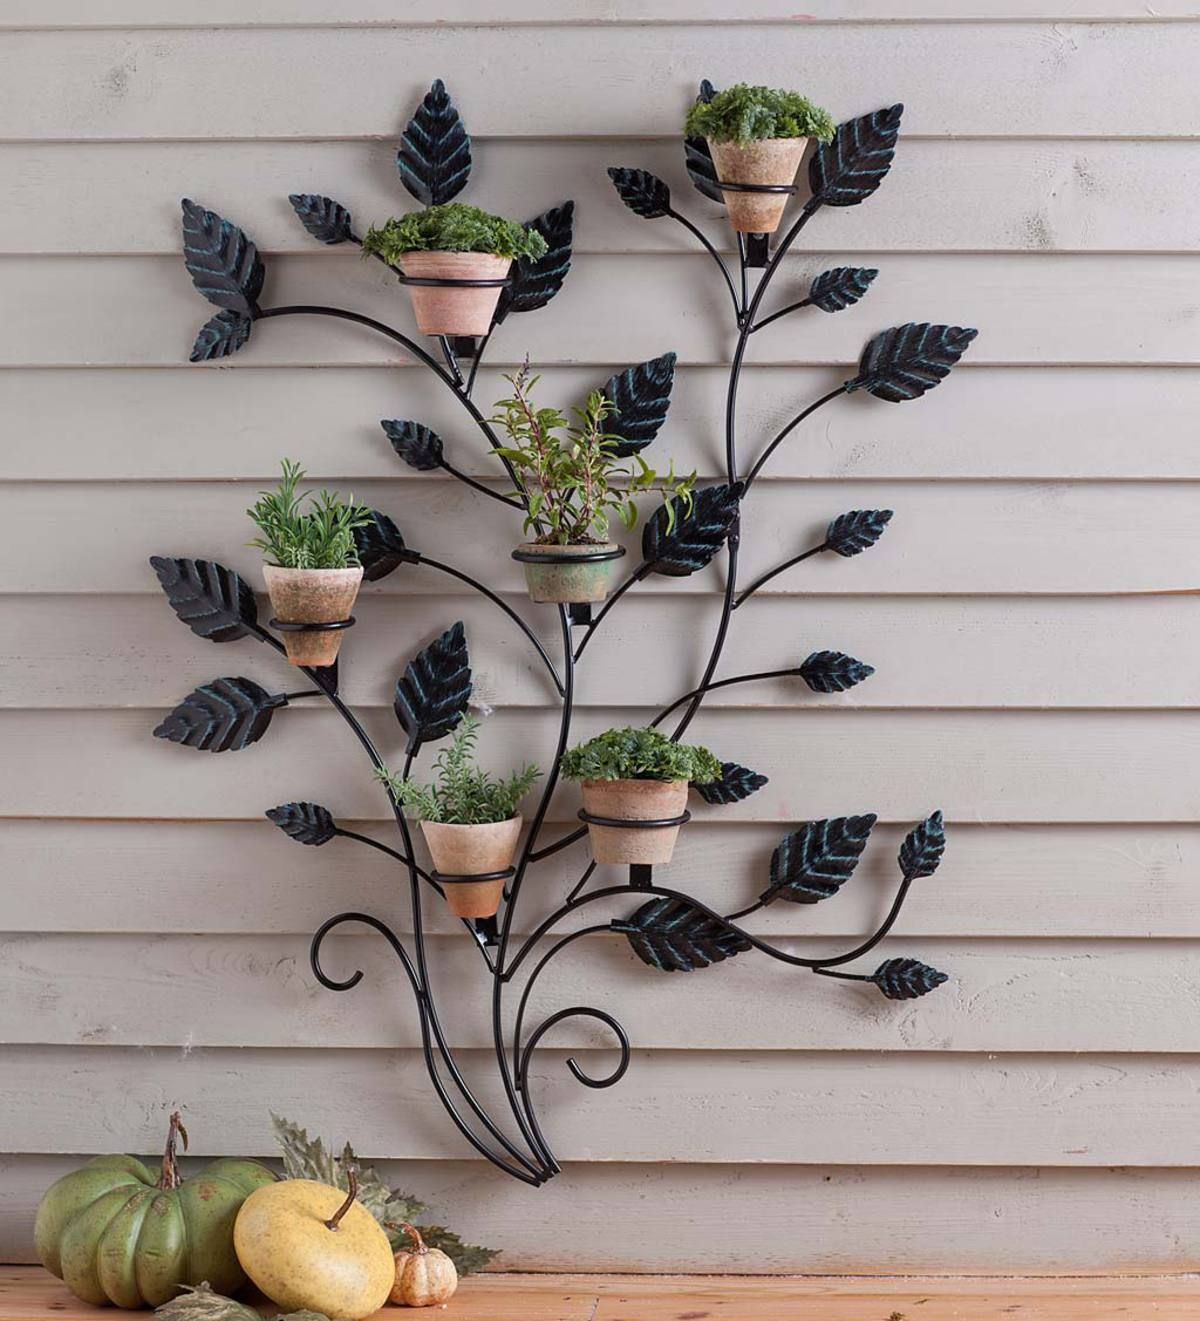 This Artful Vine Wall Trellis Is A Unique Way To Display